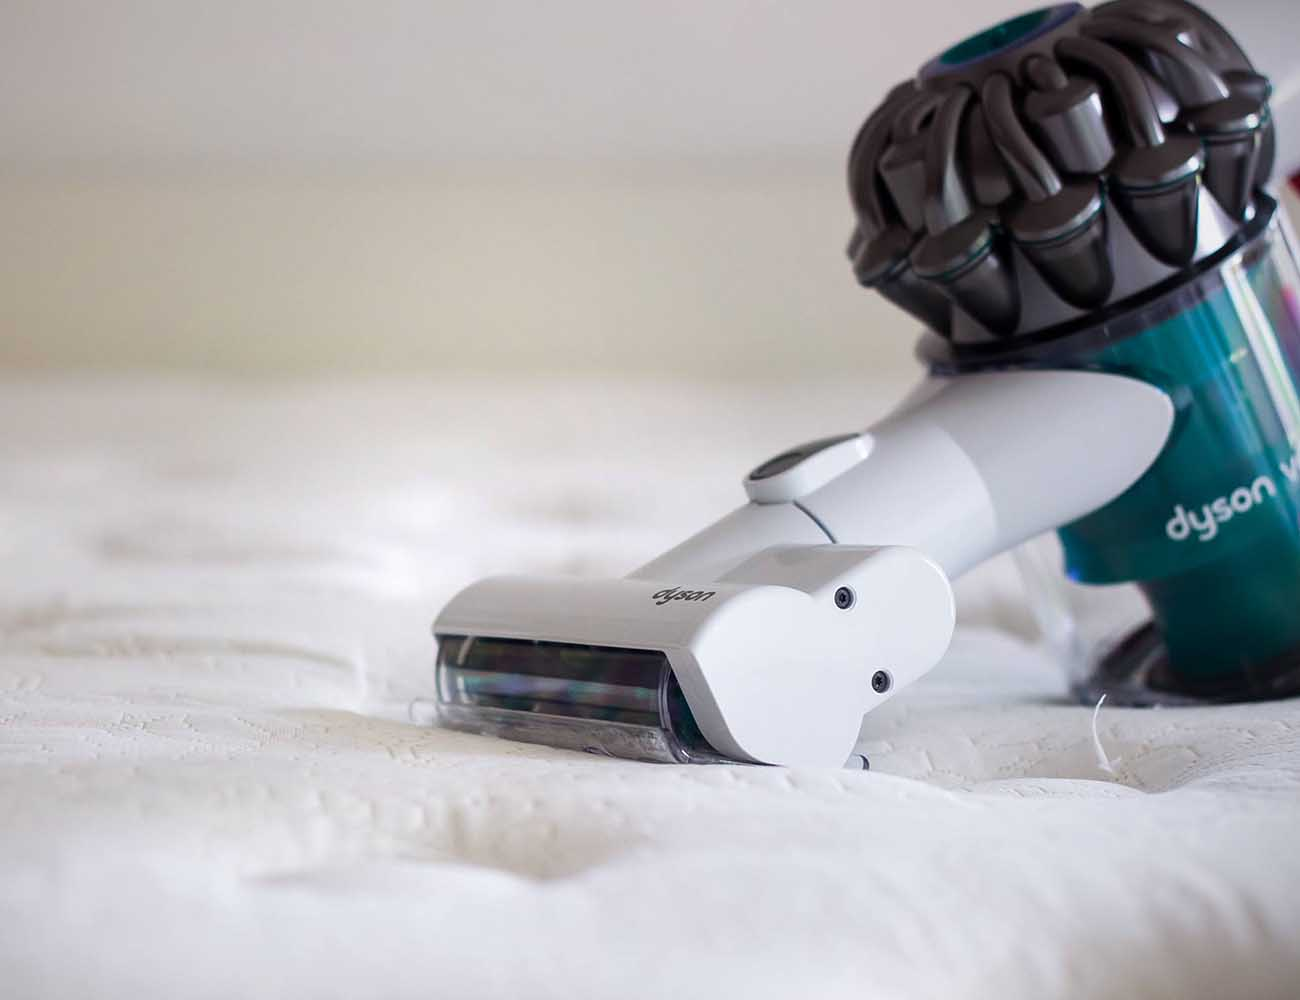 V6 Mattress Vacuum by Dyson – With Powerful Suction to Remove Allergens